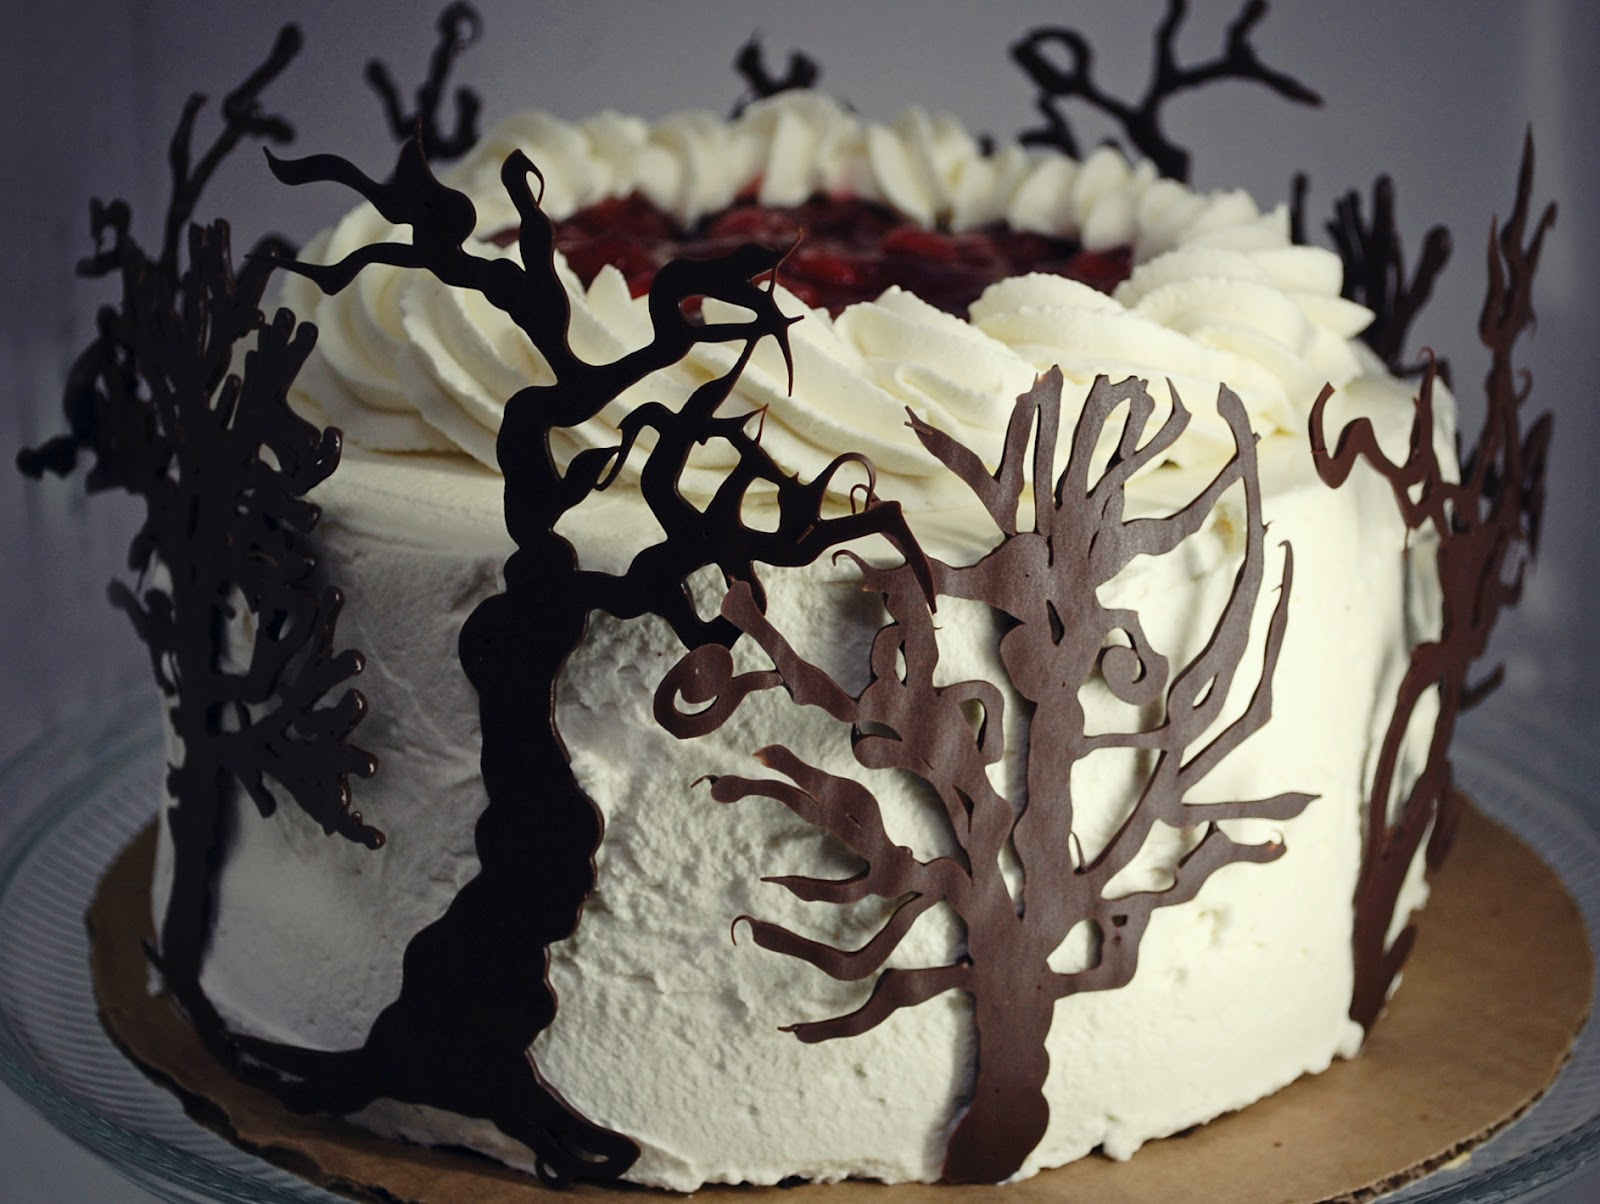 Black Forest Cake Decoration Images : CHOCOLATE TREES FOR A BLACK FOREST CAKE. WIN. - The ...